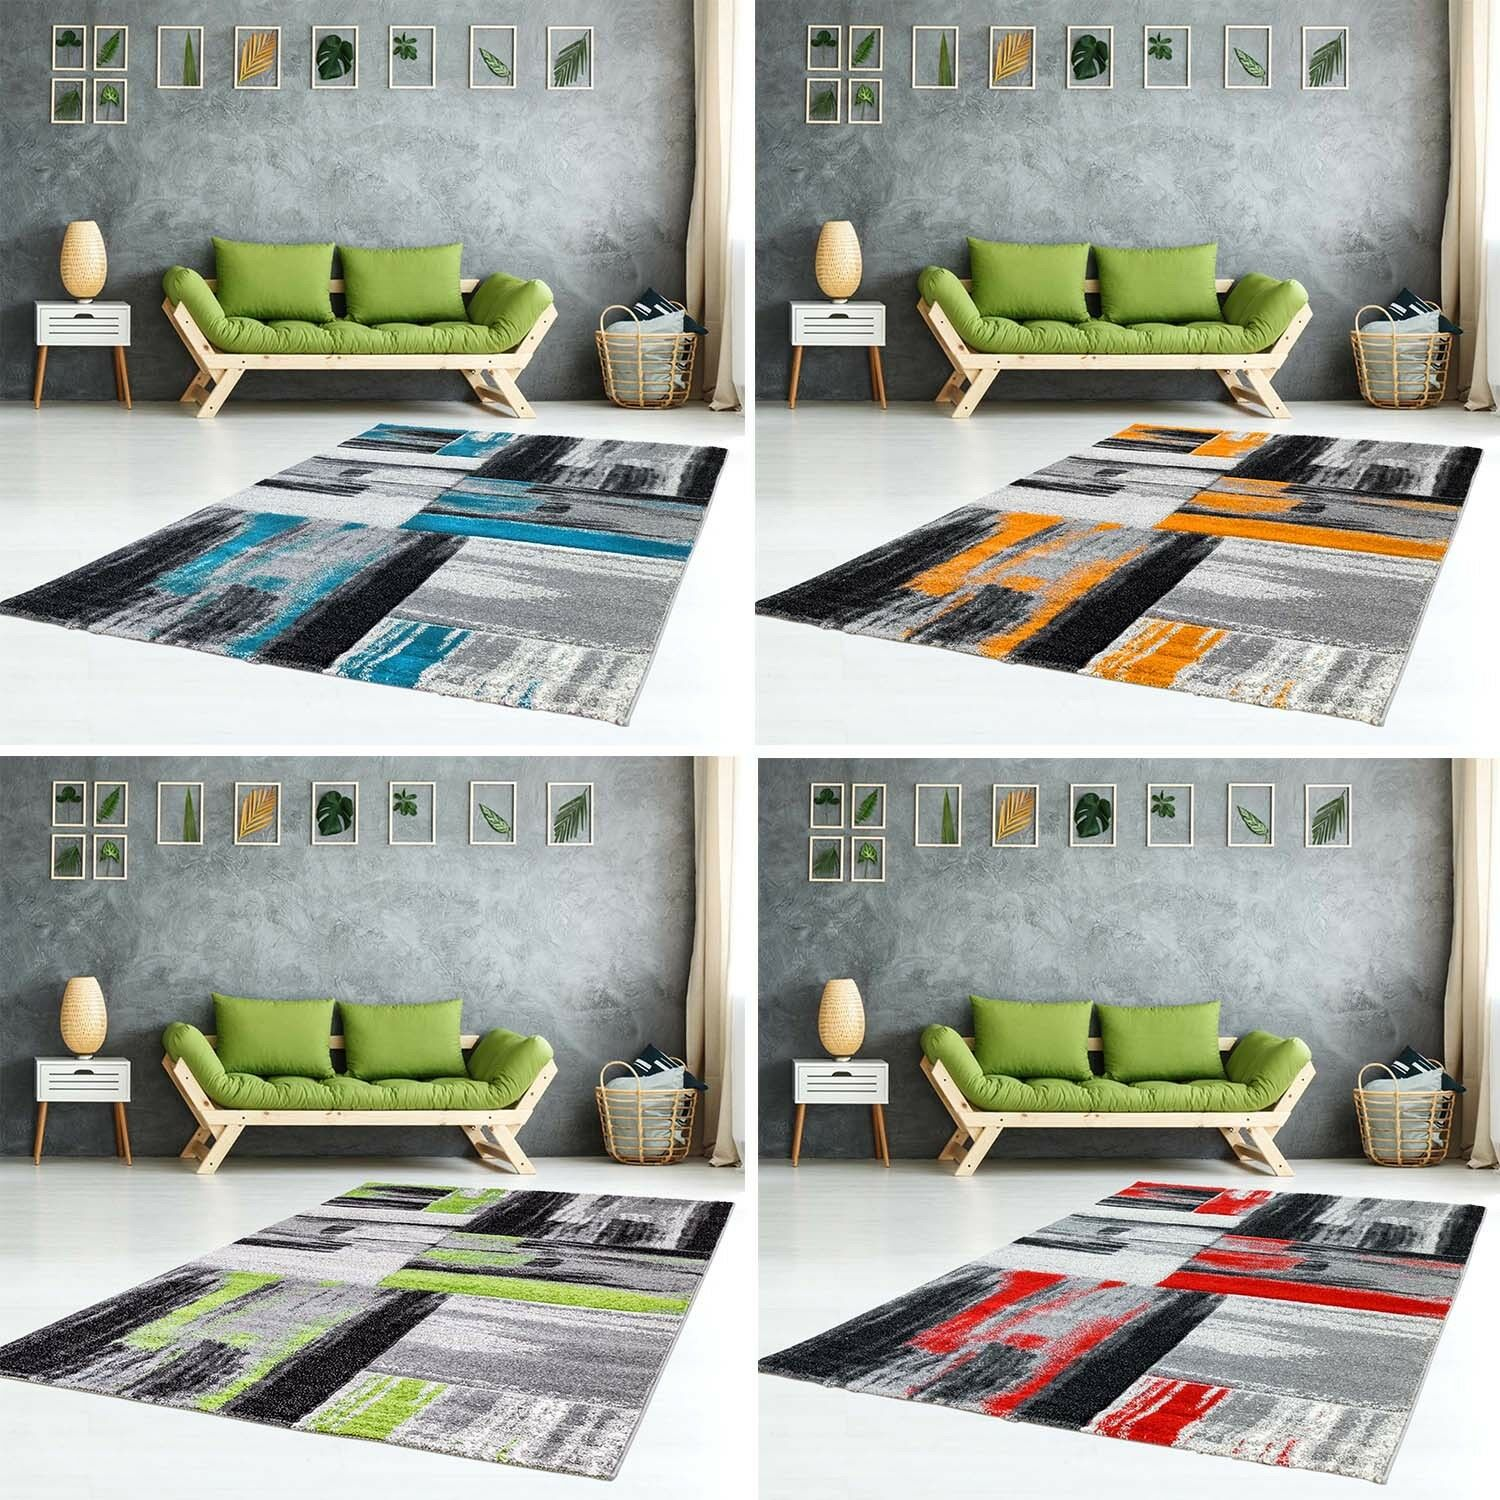 tapis moderne design salon secouer d grad de couleur. Black Bedroom Furniture Sets. Home Design Ideas